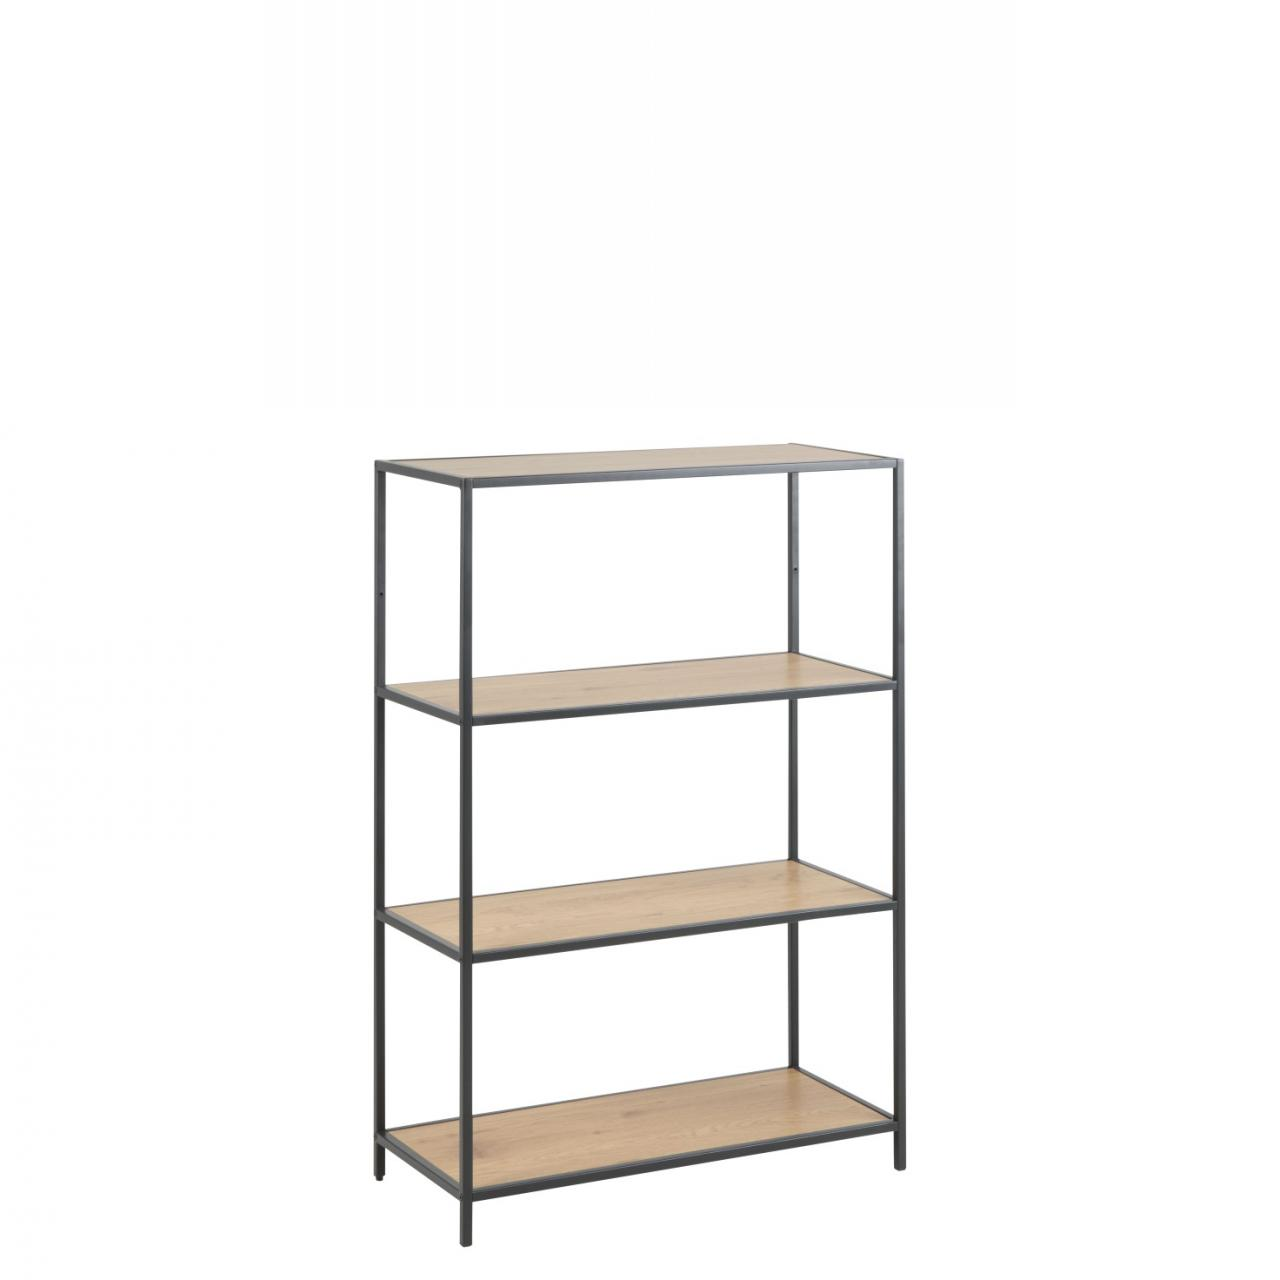 Metall Regal Eiche Bücherregal Seaford 75966 Wildeiche Nb Metall Schwarz 2 Böden Mdf Regal